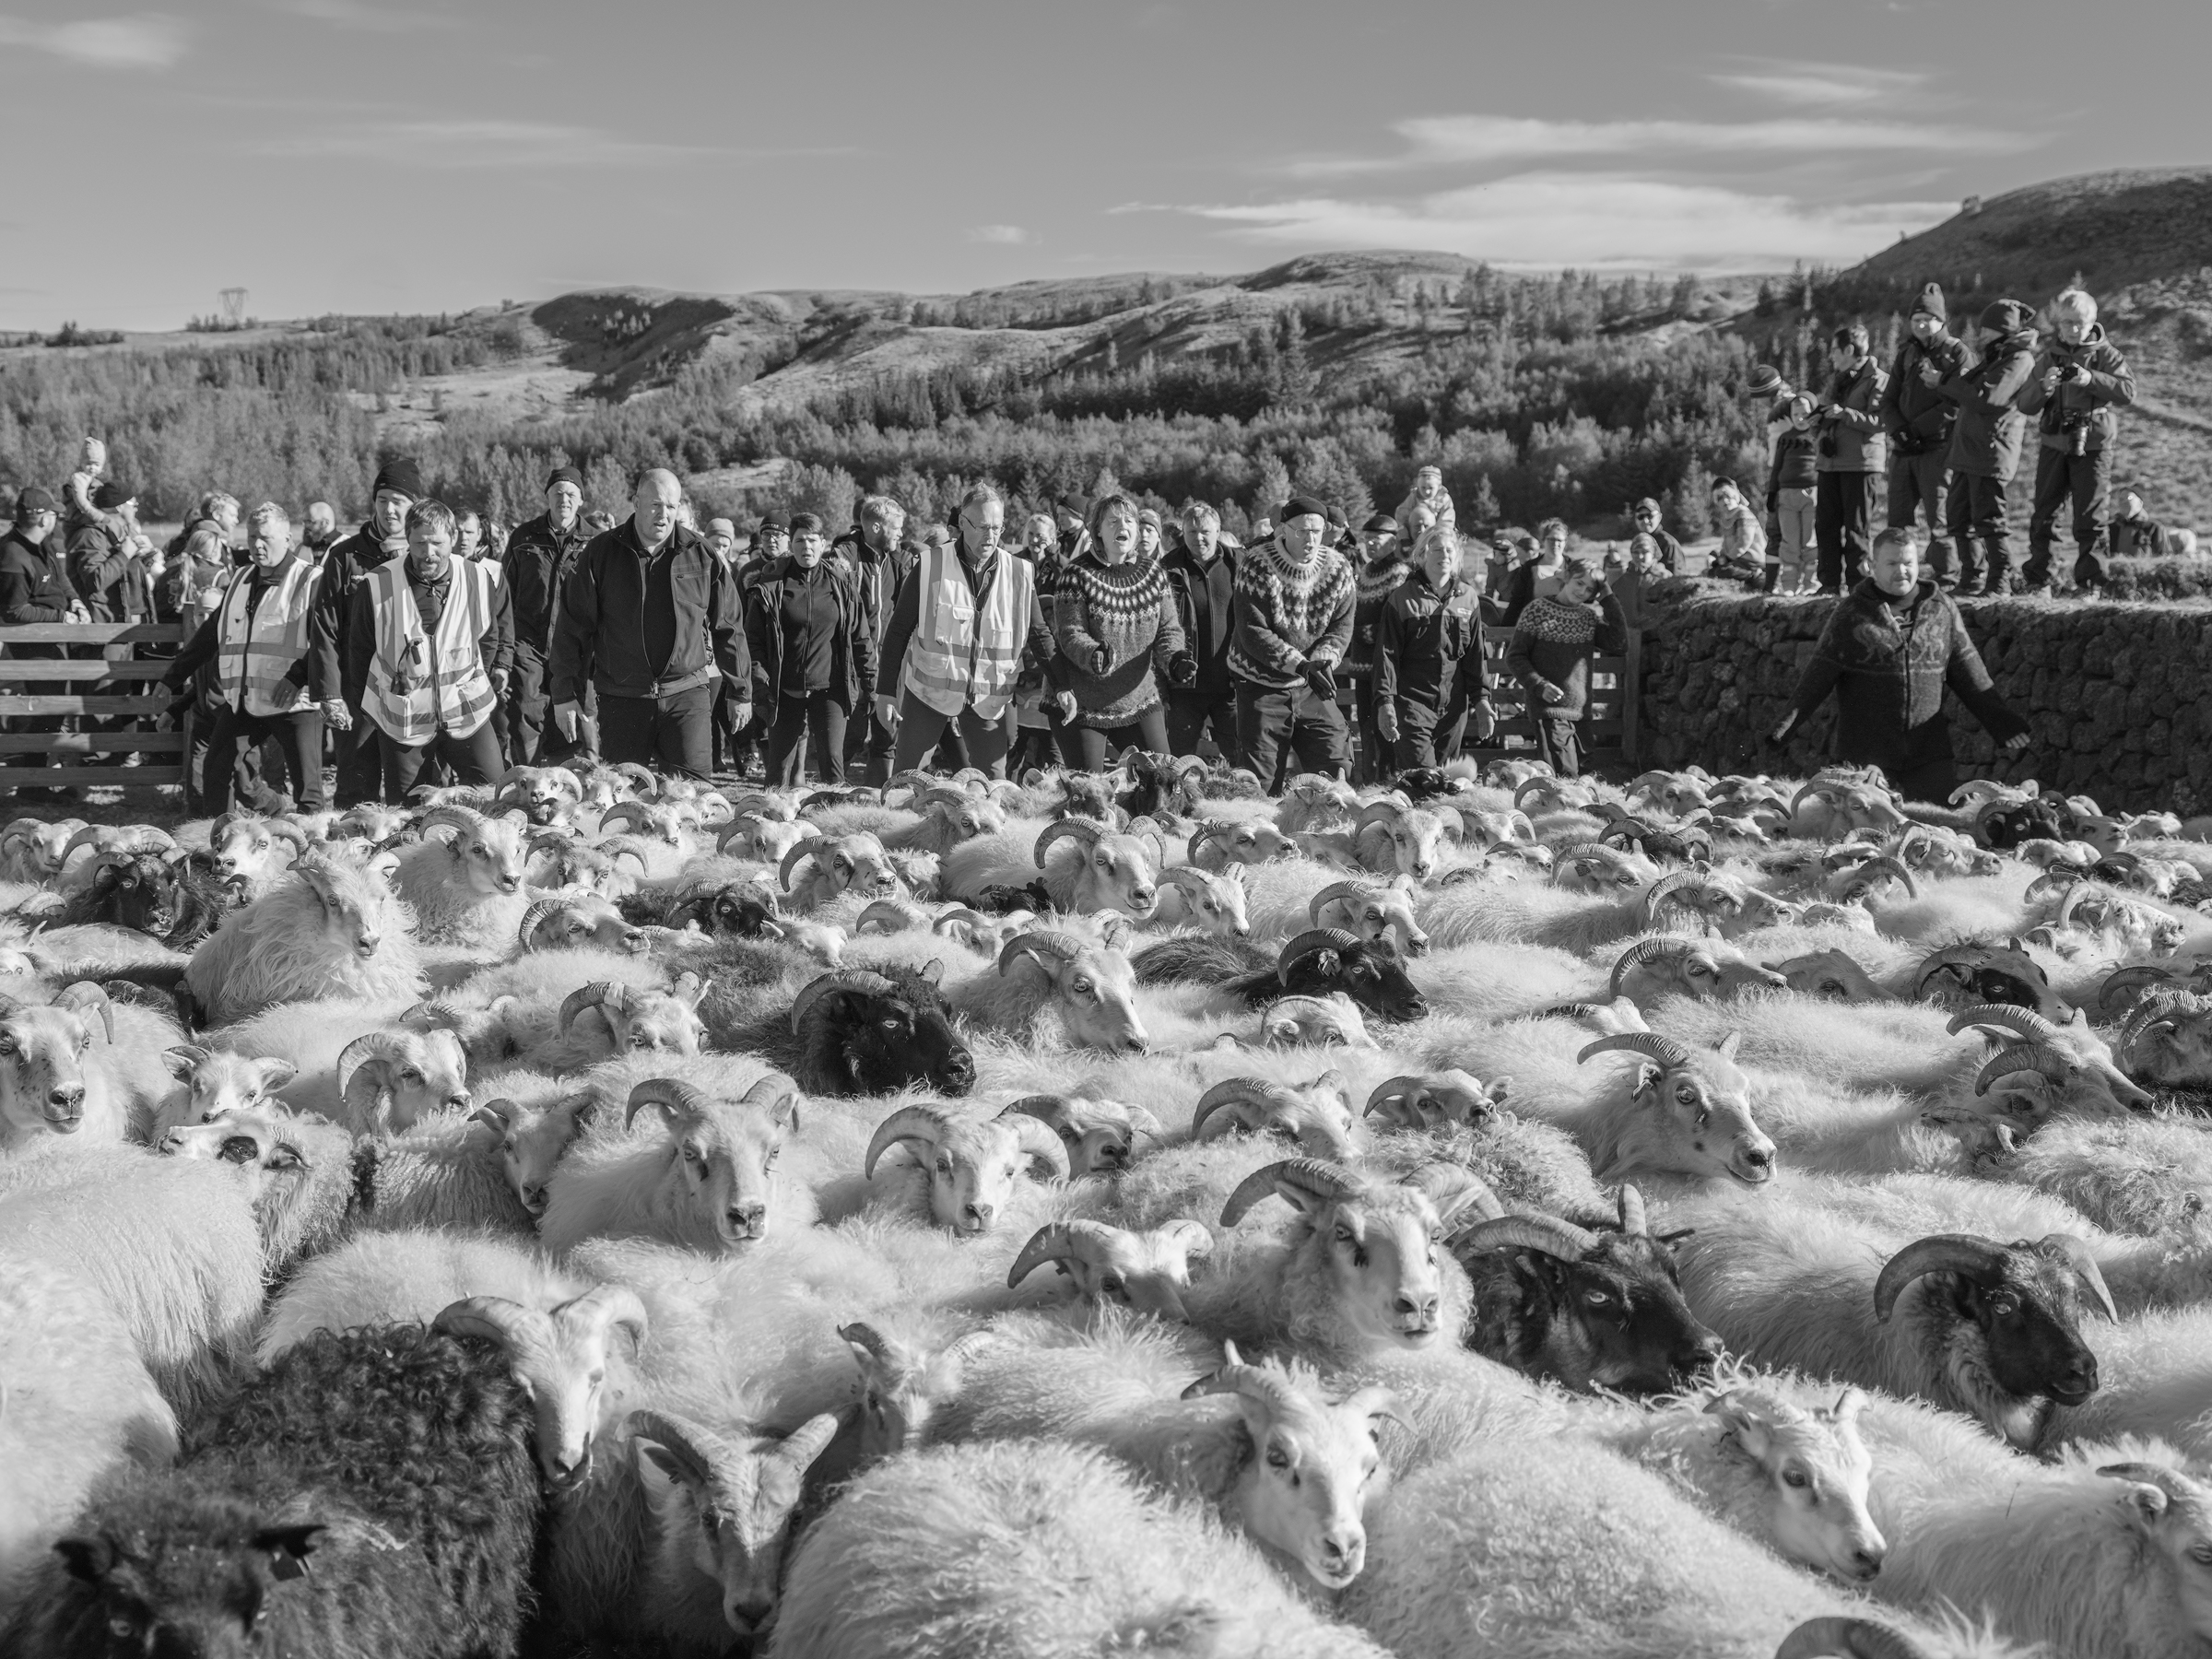 The framers at the back of the group pushing the sheep forward into the ring.